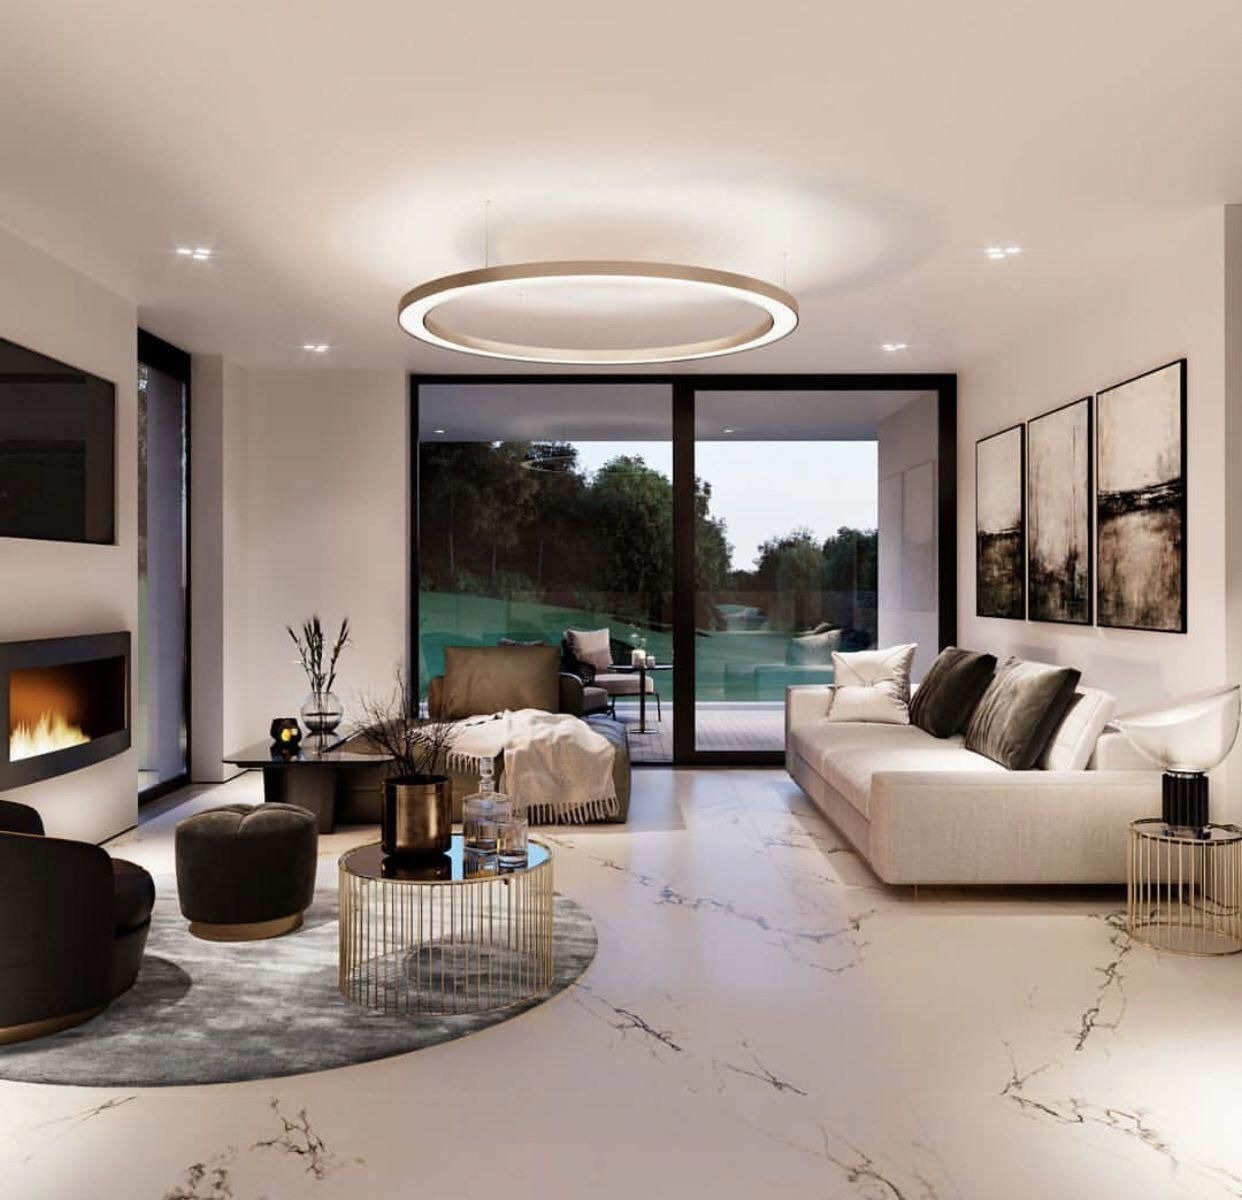 Learn how to make your living room look and feel more luxurious